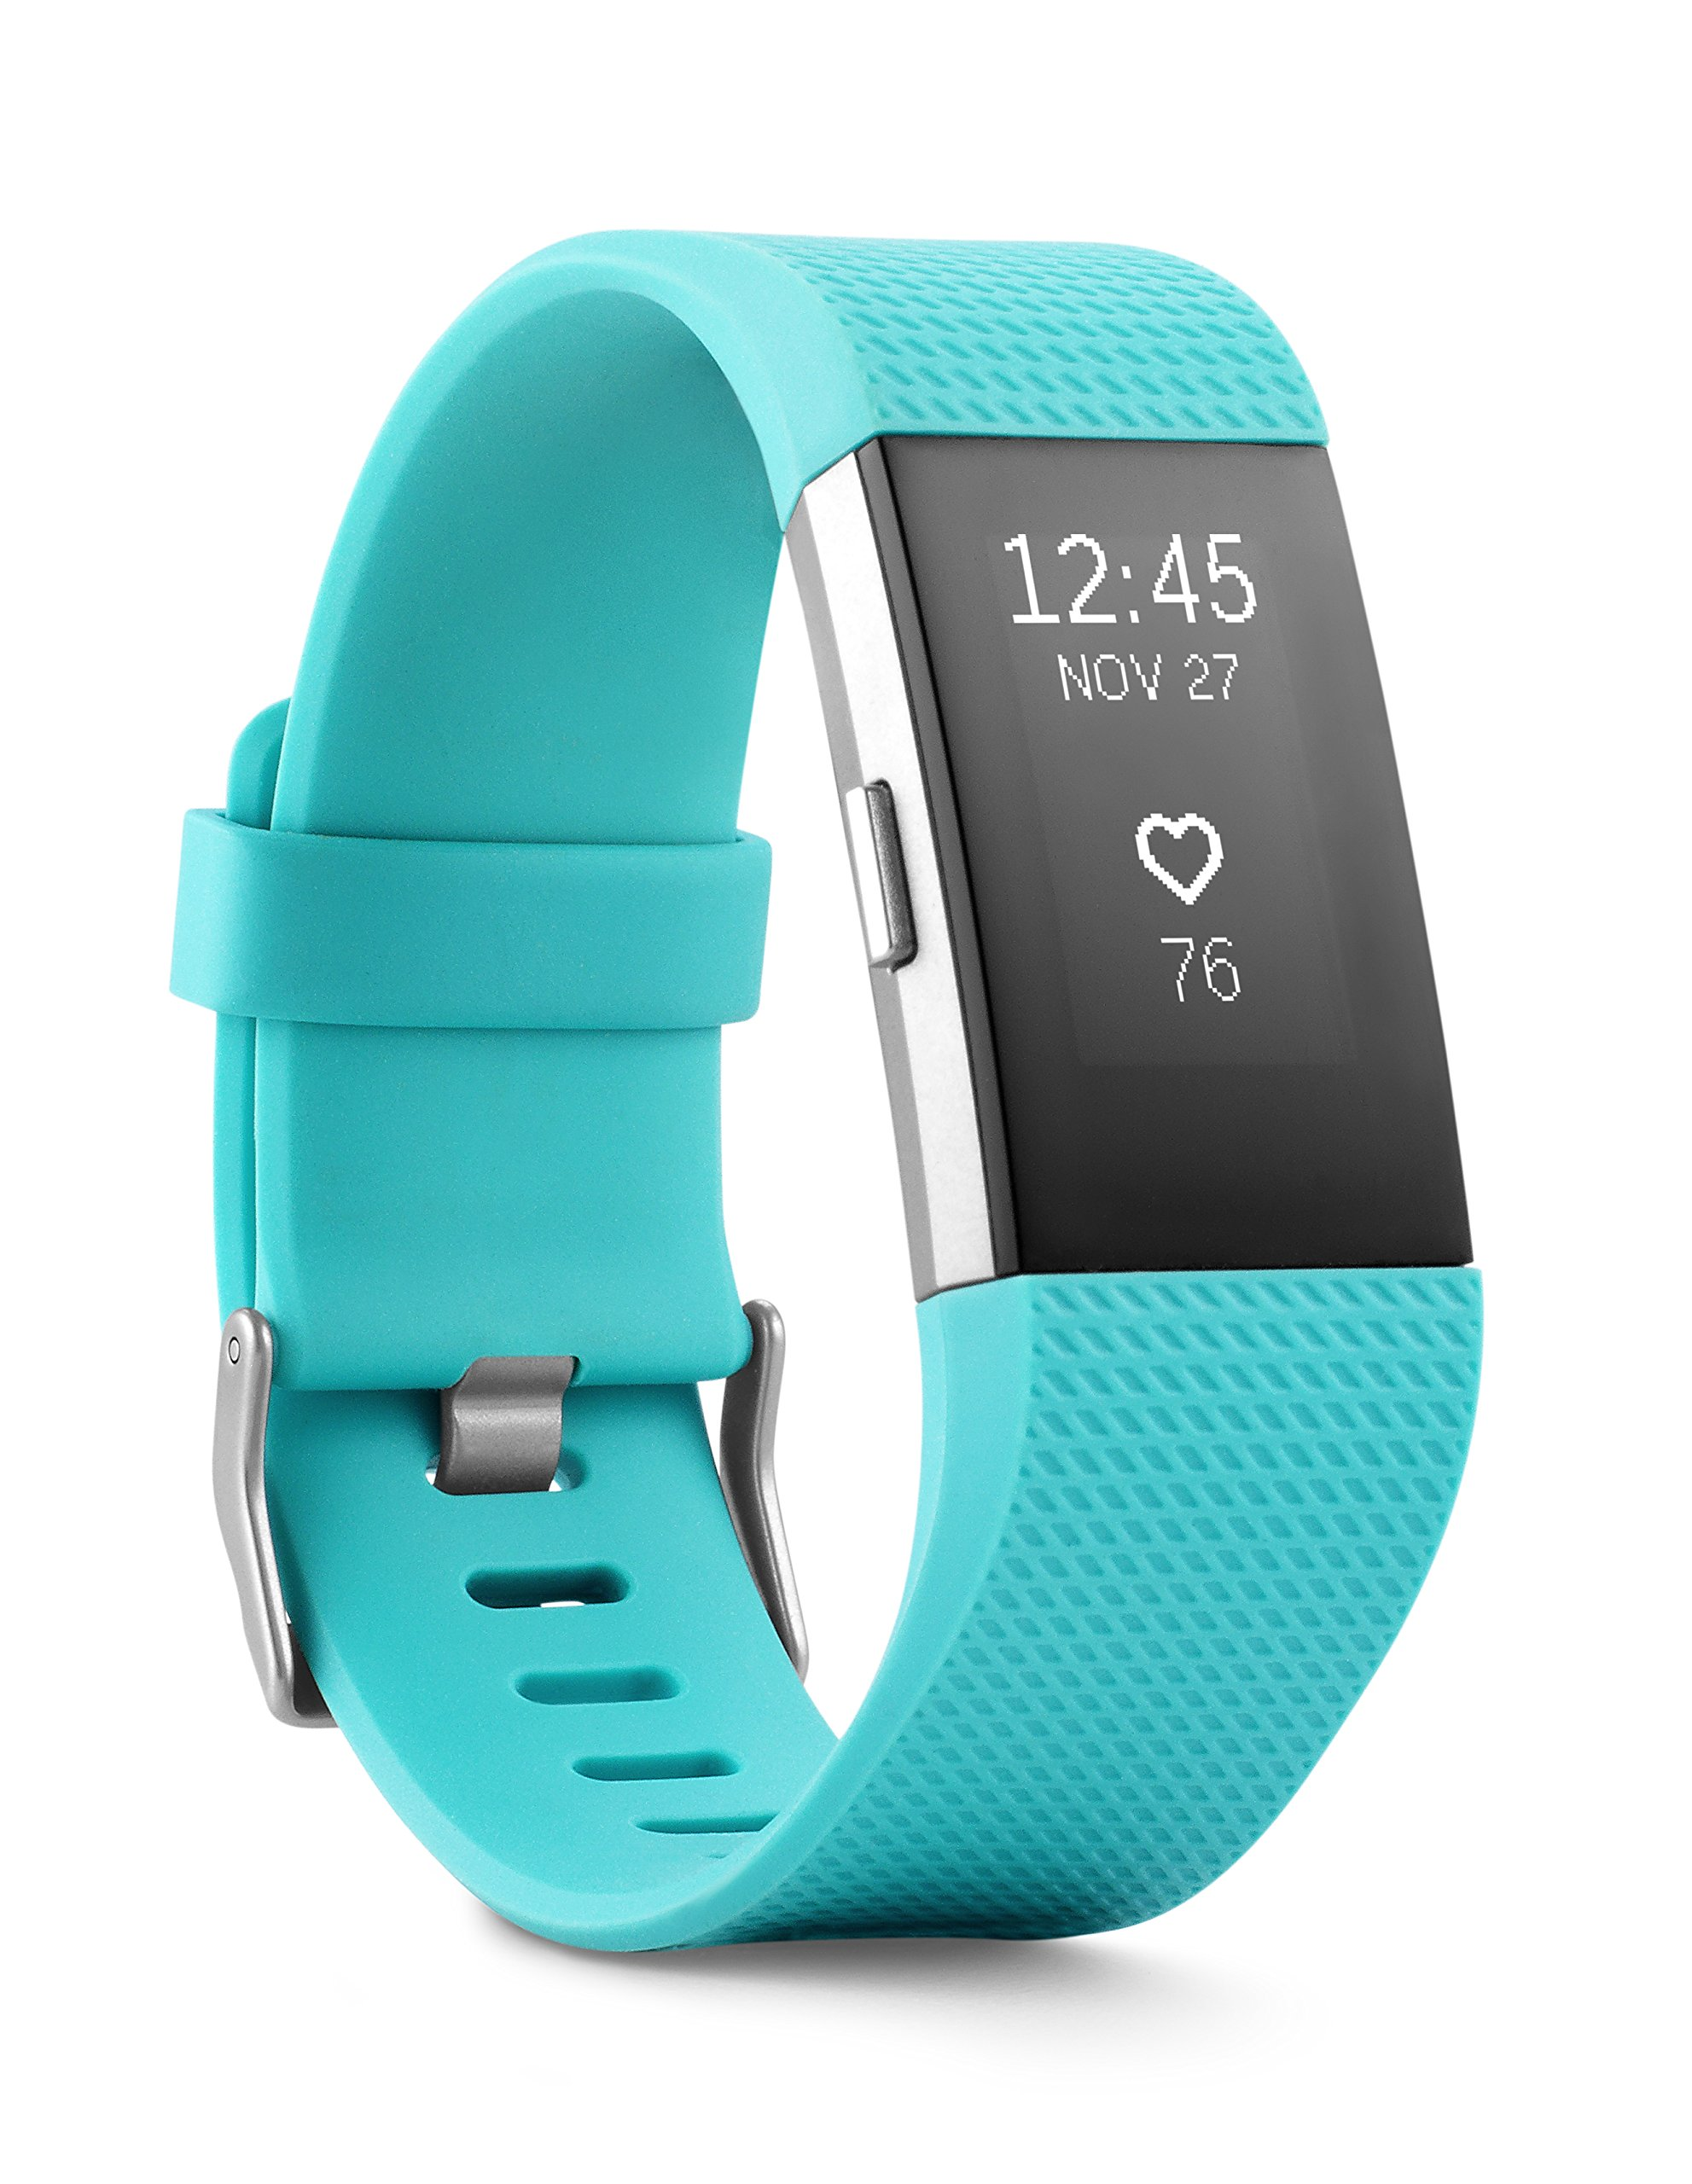 Fitbit Charge 2 Heart Rate + Fitness Wristband, Teal, Large (US Version) by Fitbit